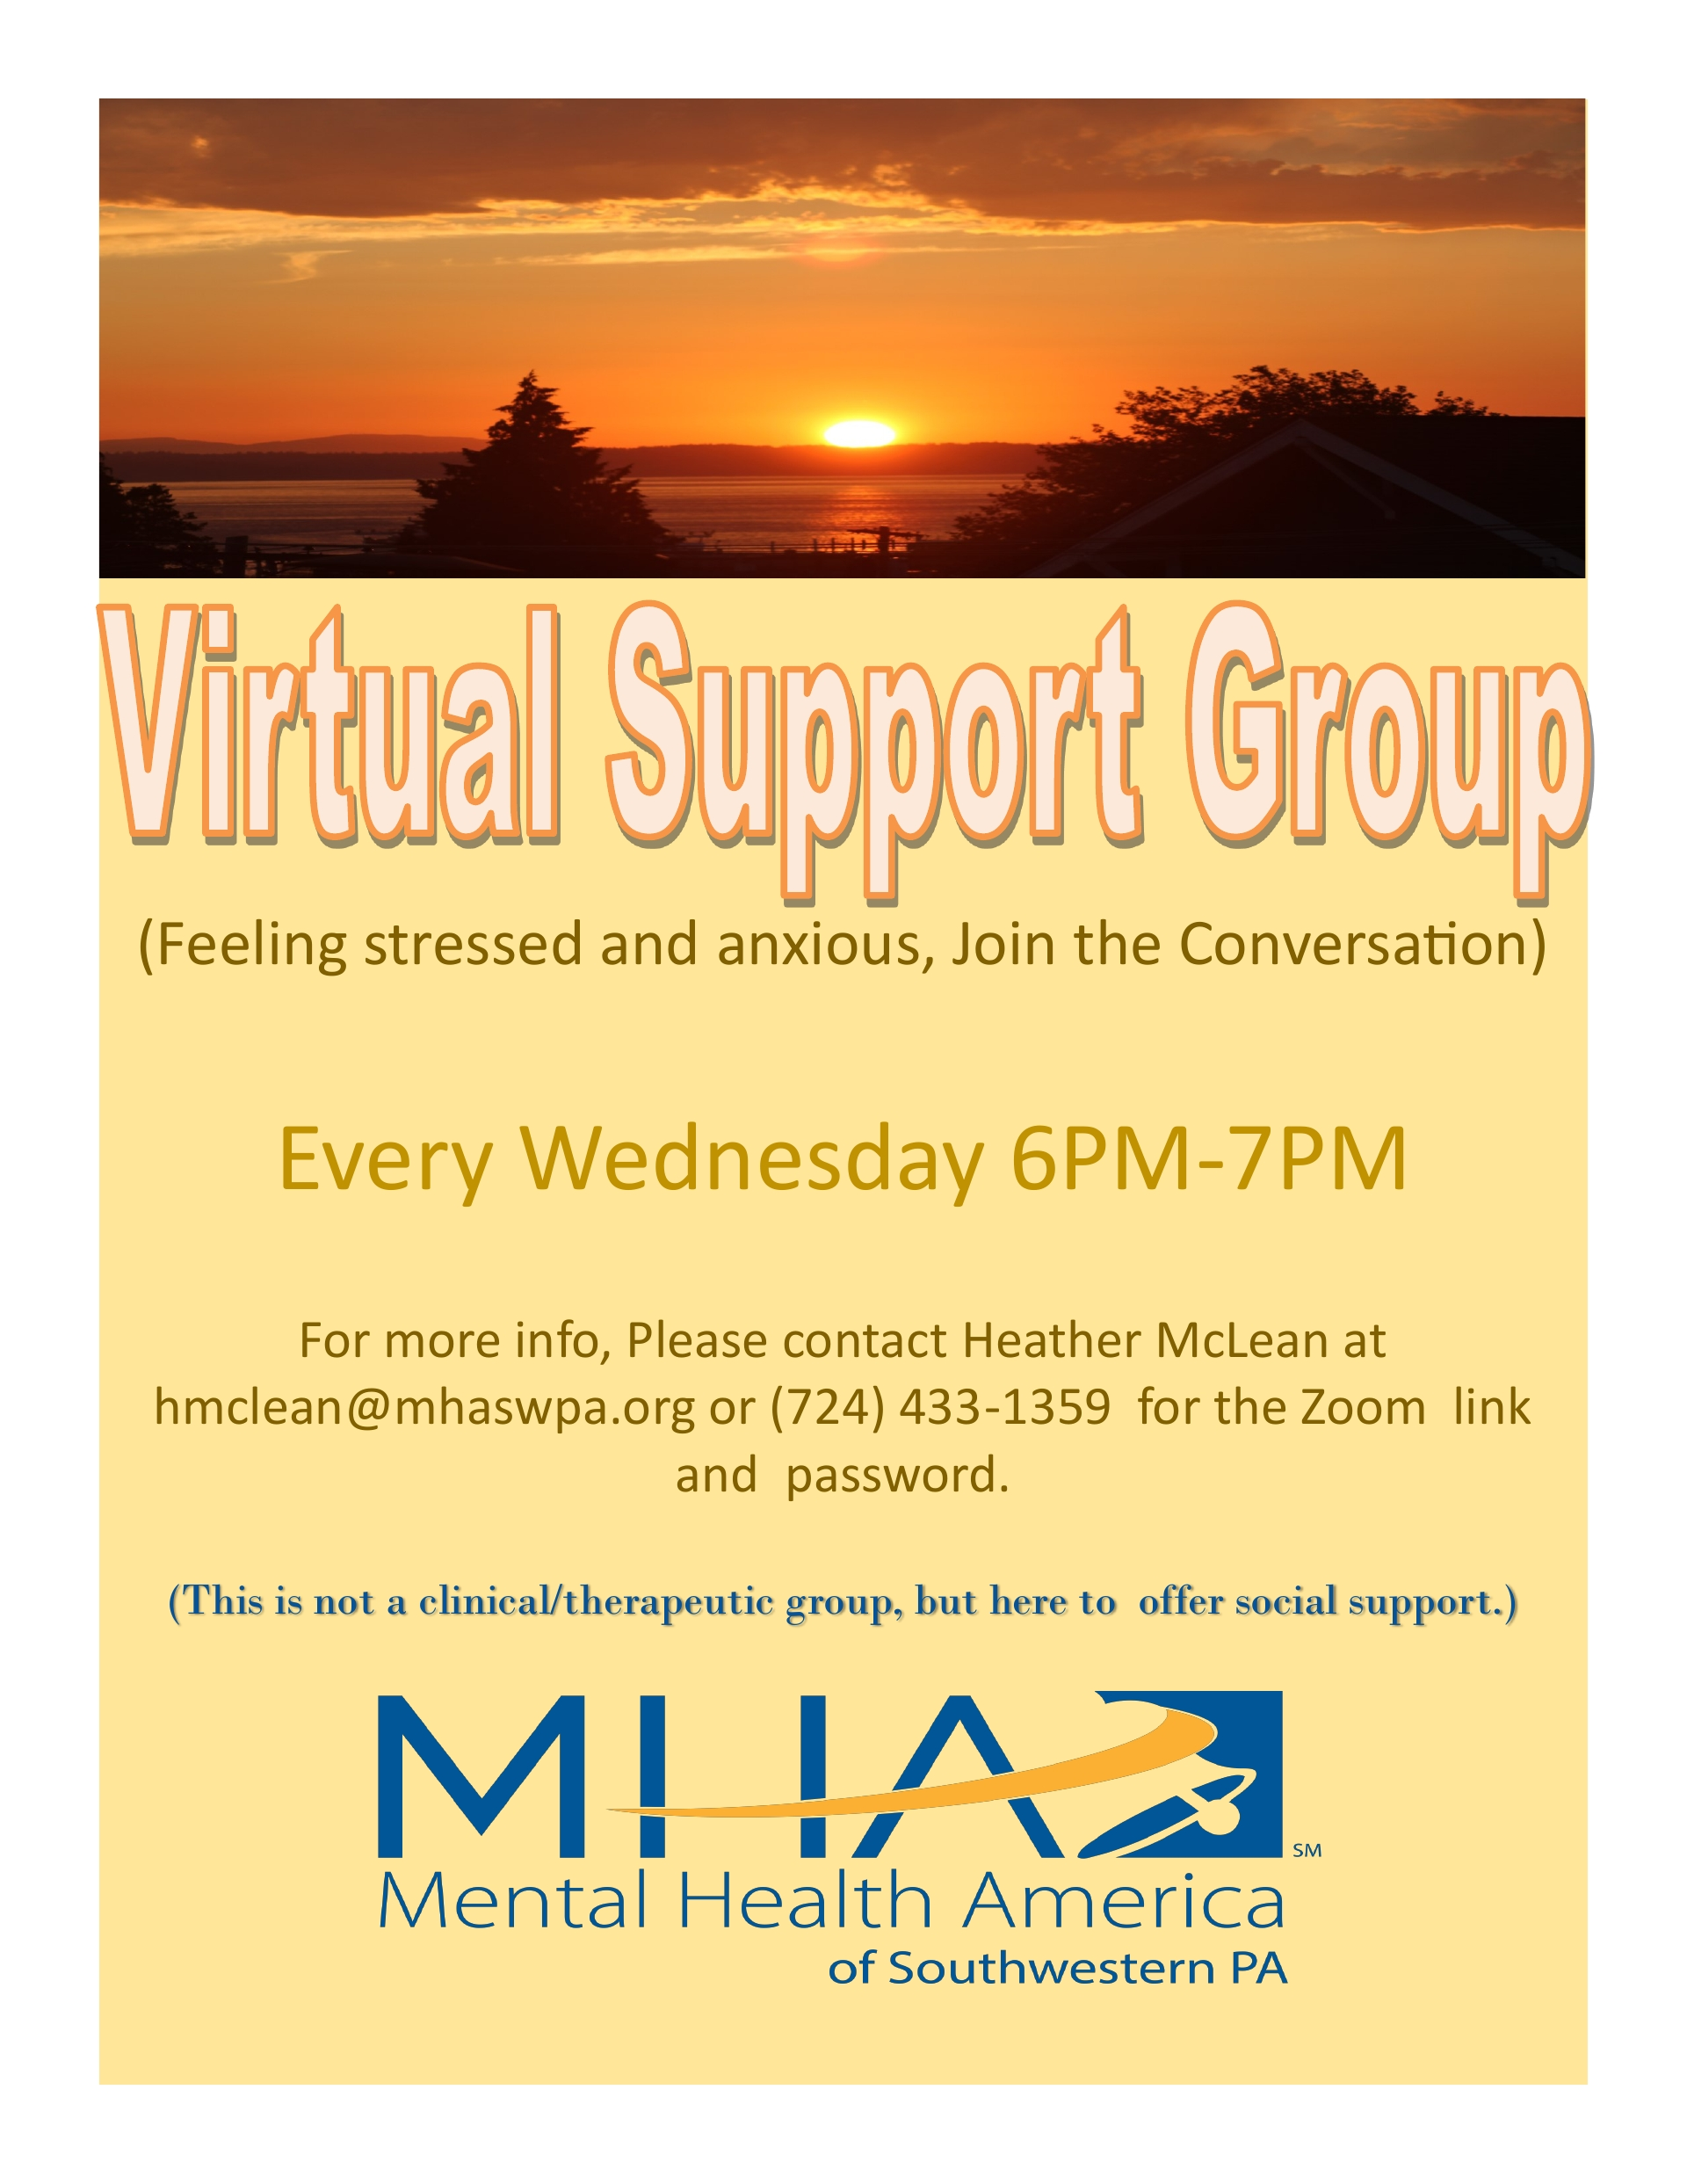 VIRTUAL SUPPORT GROUP every Wednesday!